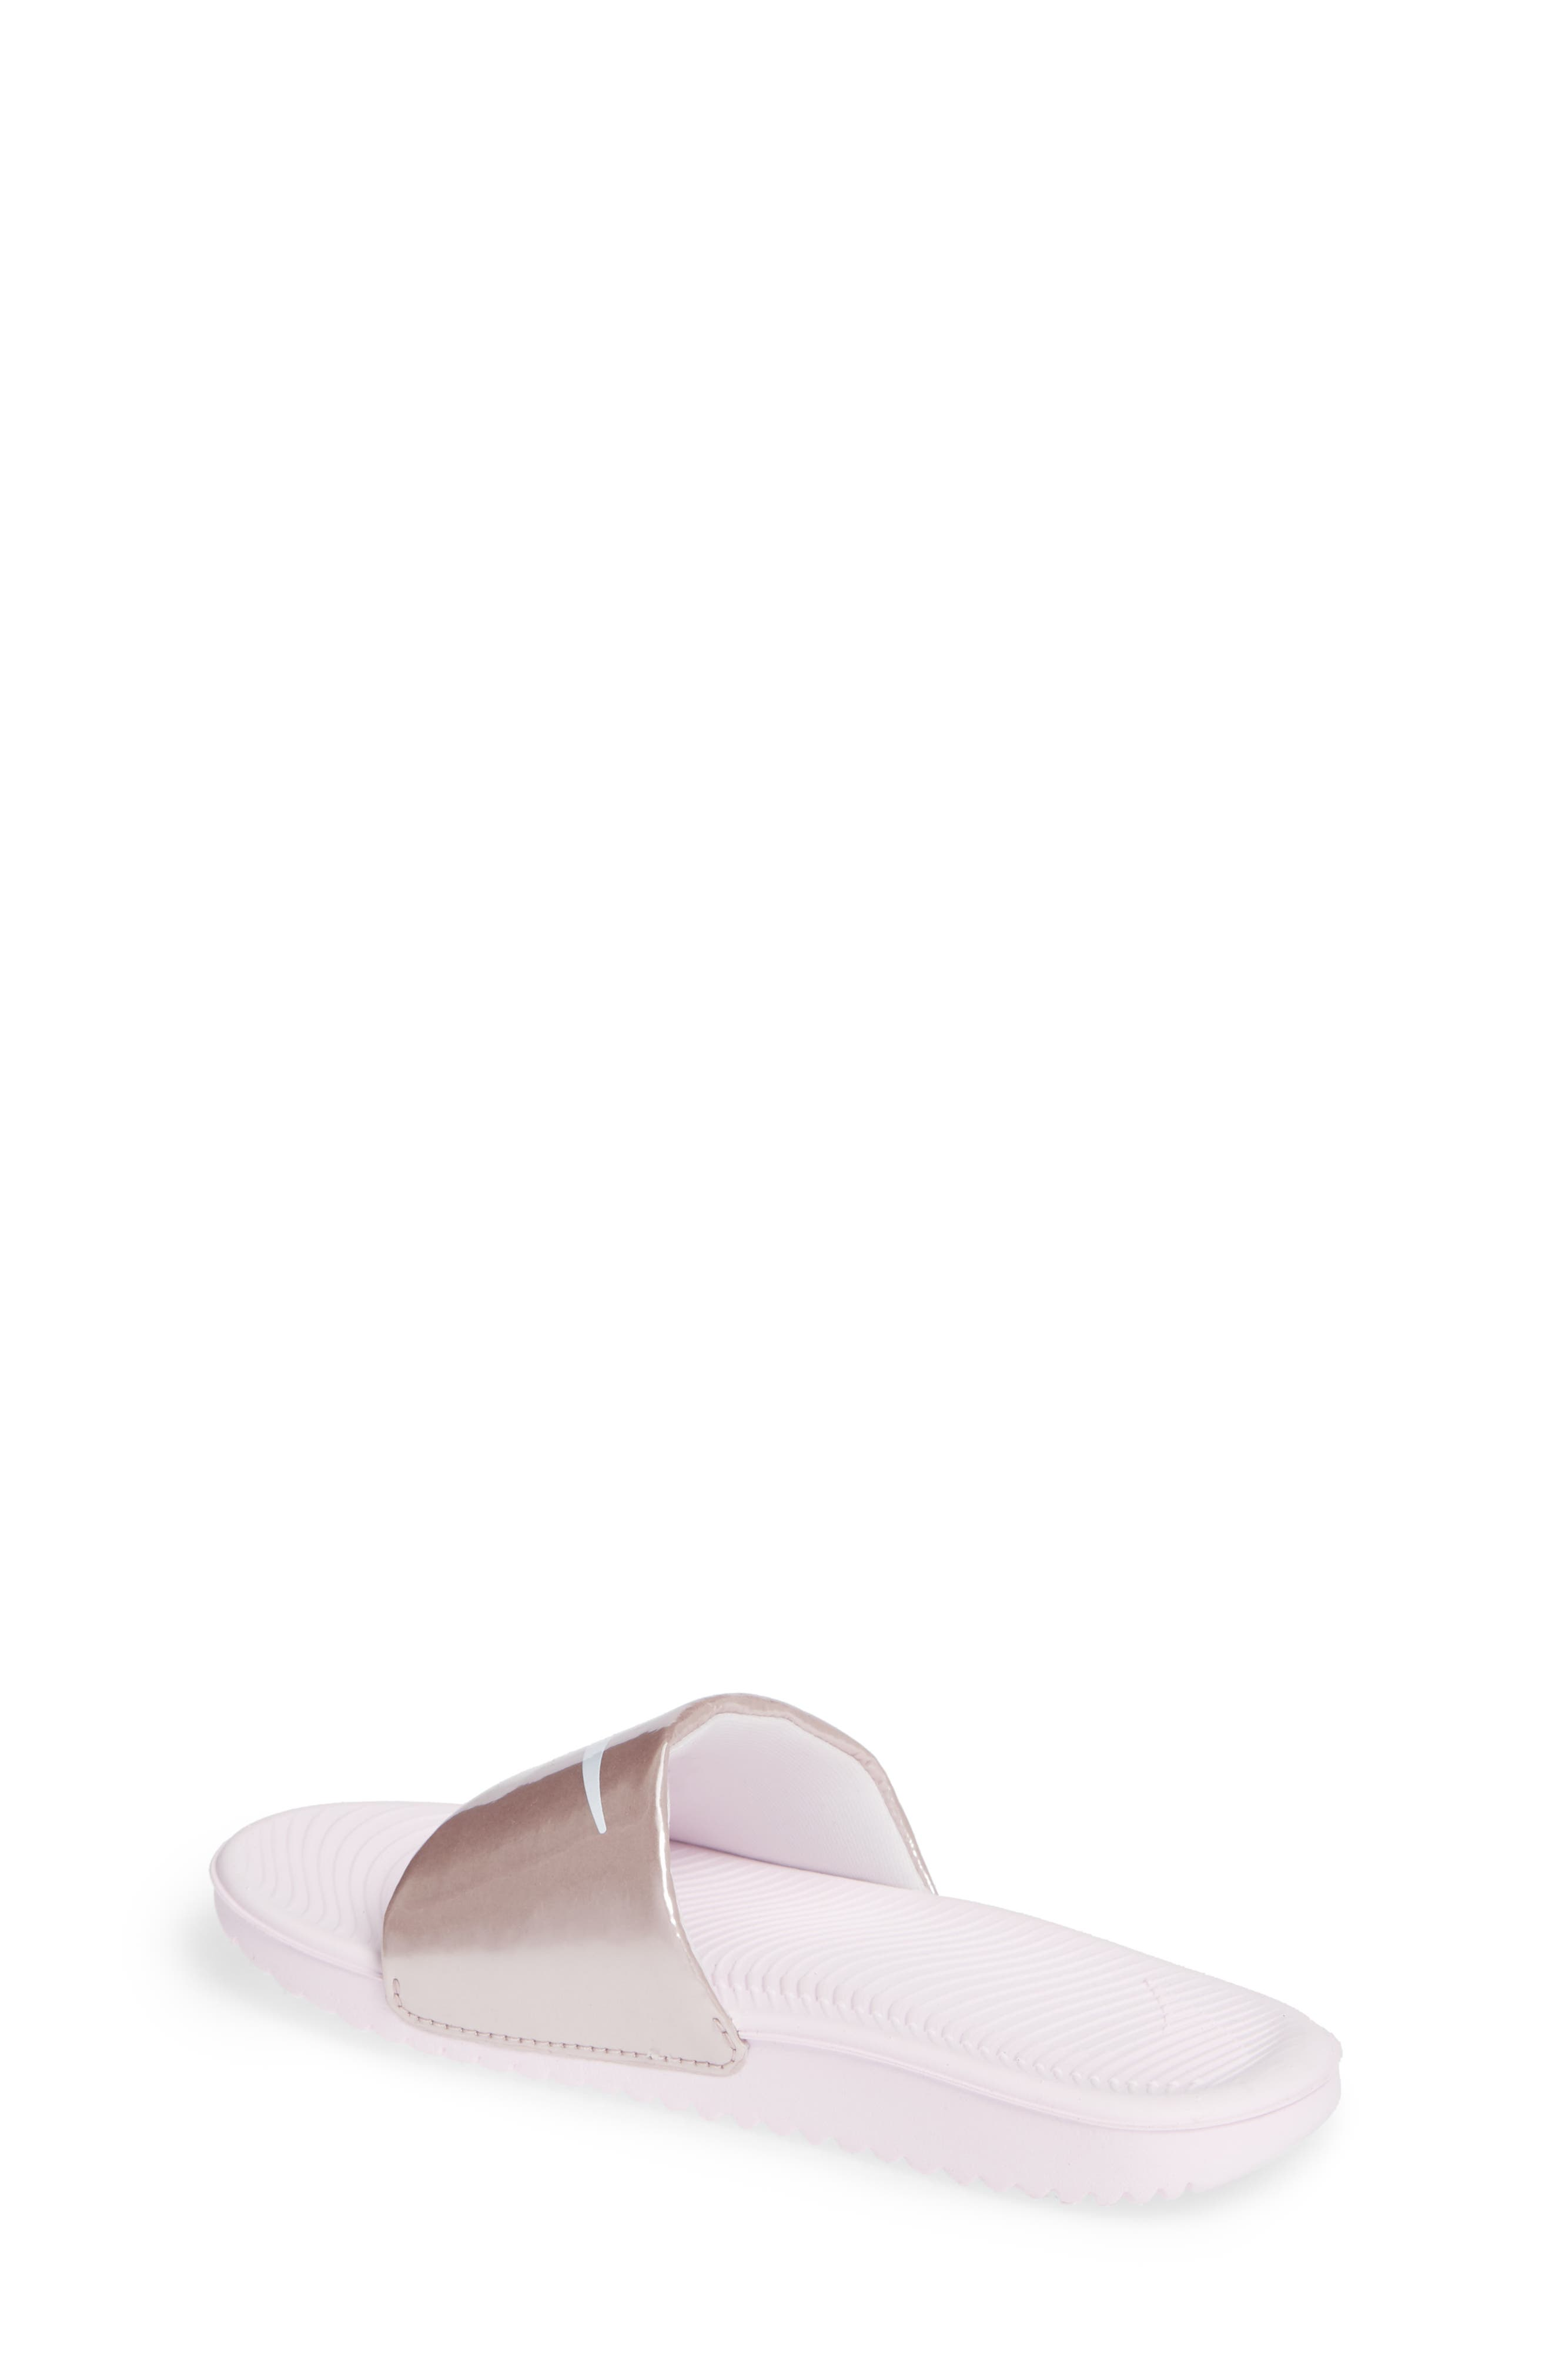 NIKE, 'Kawa' Slide Sandal, Alternate thumbnail 2, color, ARCTIC PINK/ WHITE/ RED BRONZE